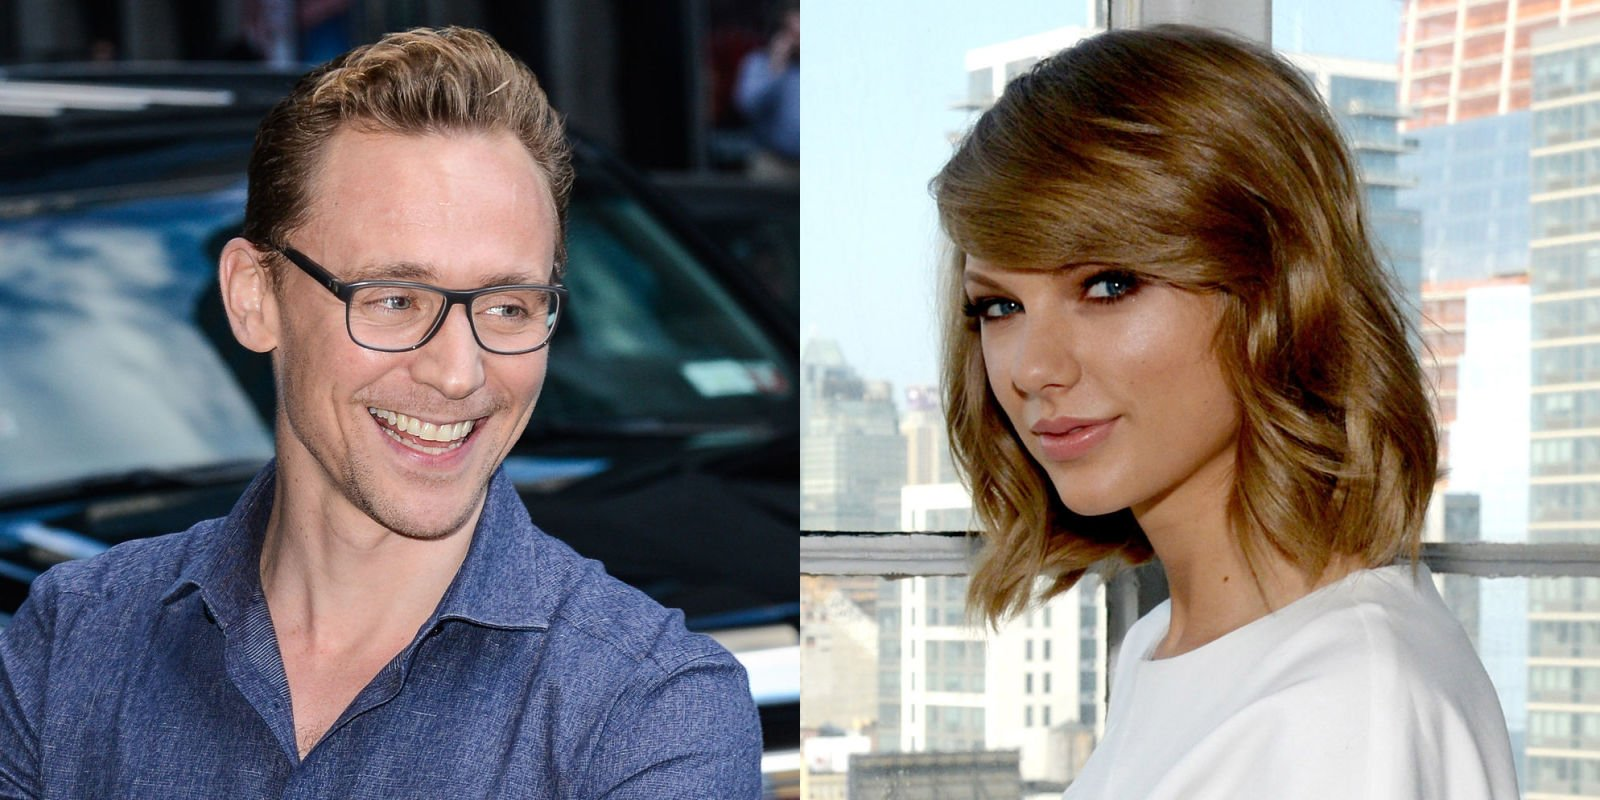 Taylor Swift and Tom Hiddleston just wore matching white outfits to the Vatican: https://t.co/3GkOBhlHK3 https://t.co/jezcQnzZRH